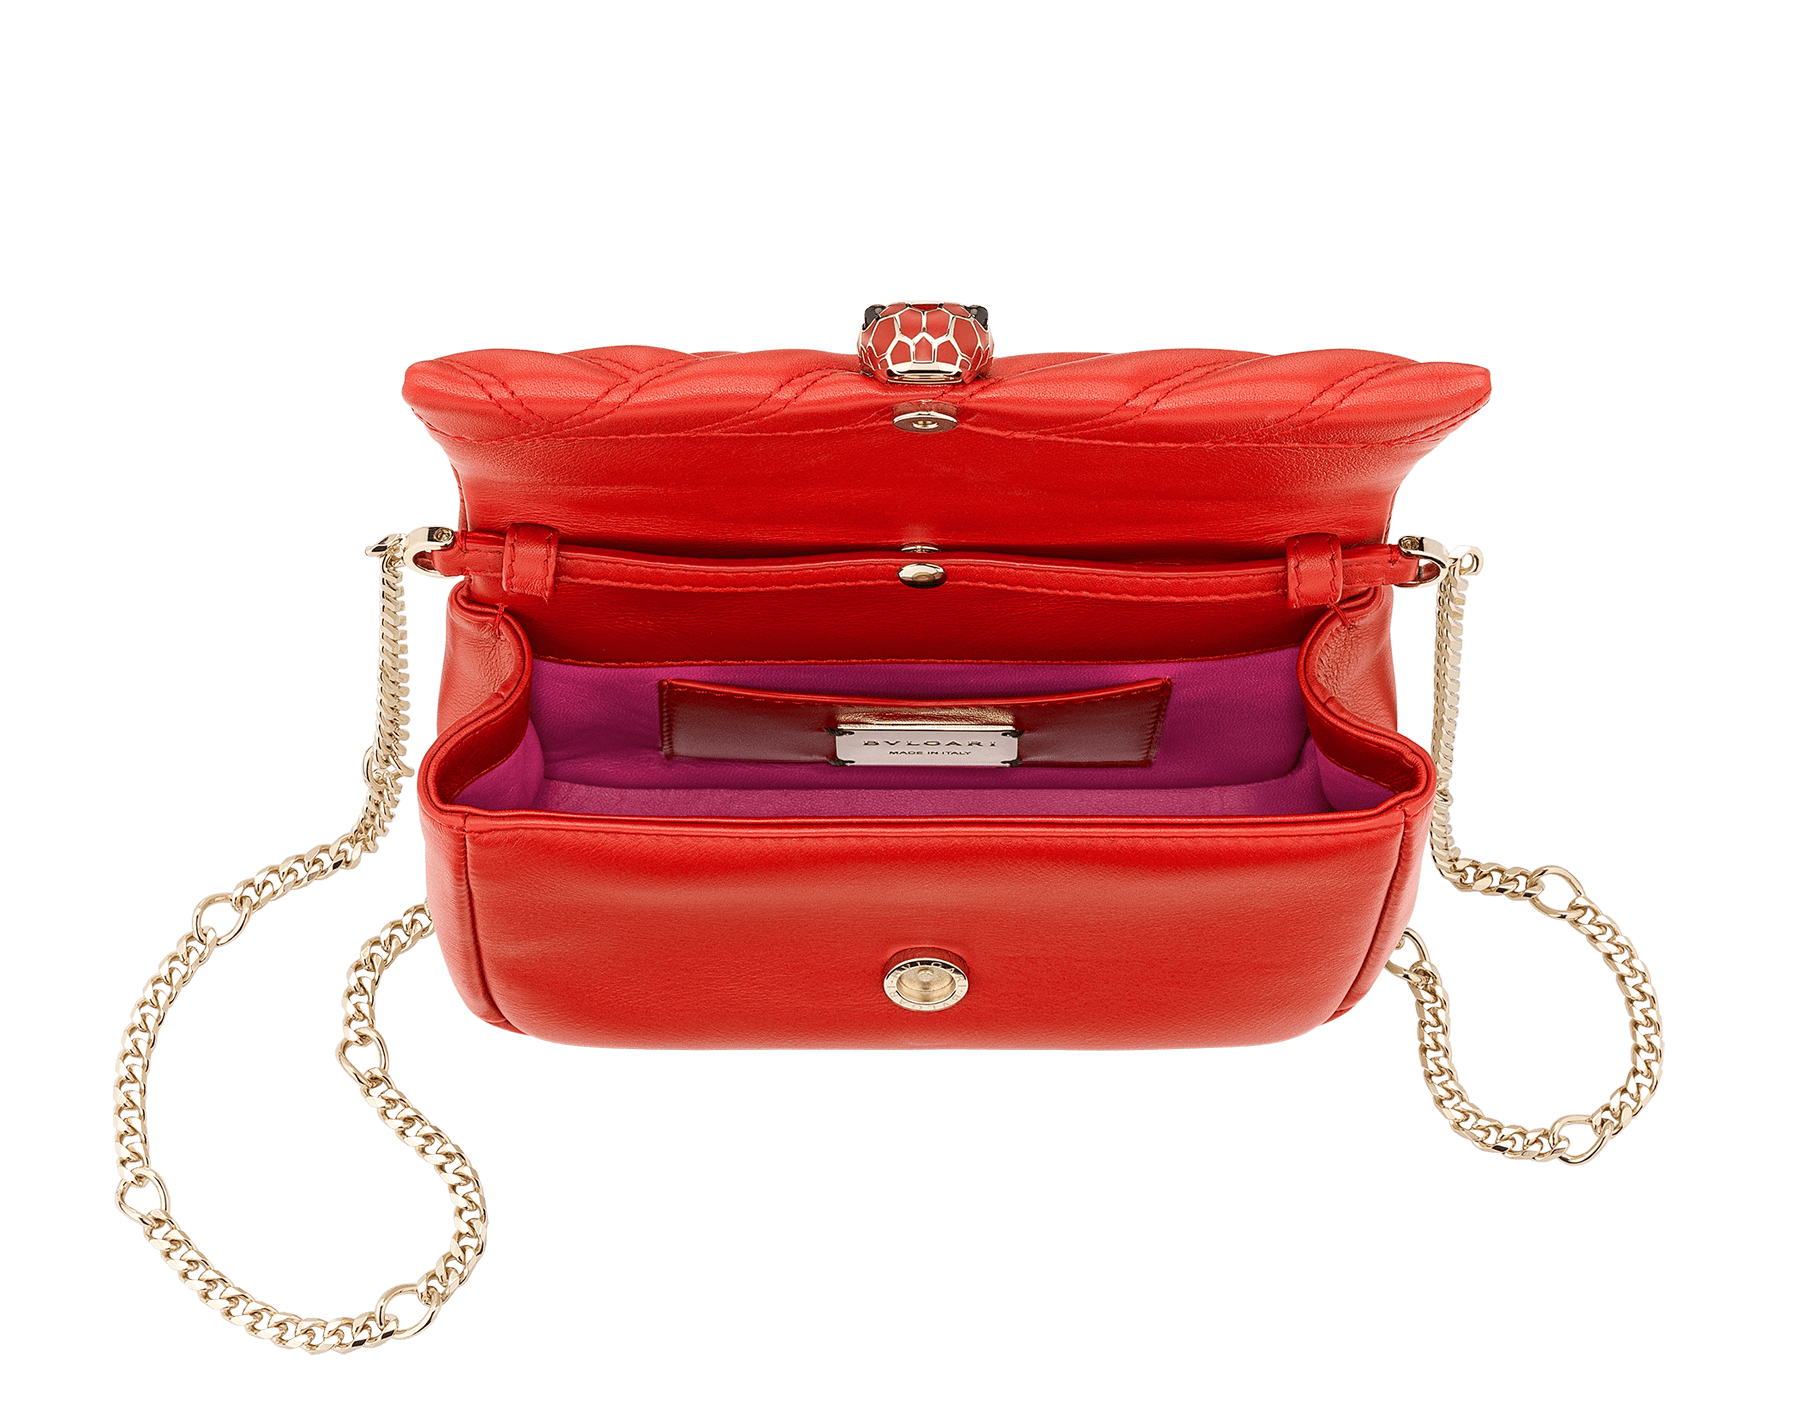 Serpenti Cabochon micro bag in soft matelassé carmine jasper calf leather, with a graphic motif. Brass light gold plated tempting snakehead closure in carmine jasper enamel and black onyx eyes. 288756 image 4